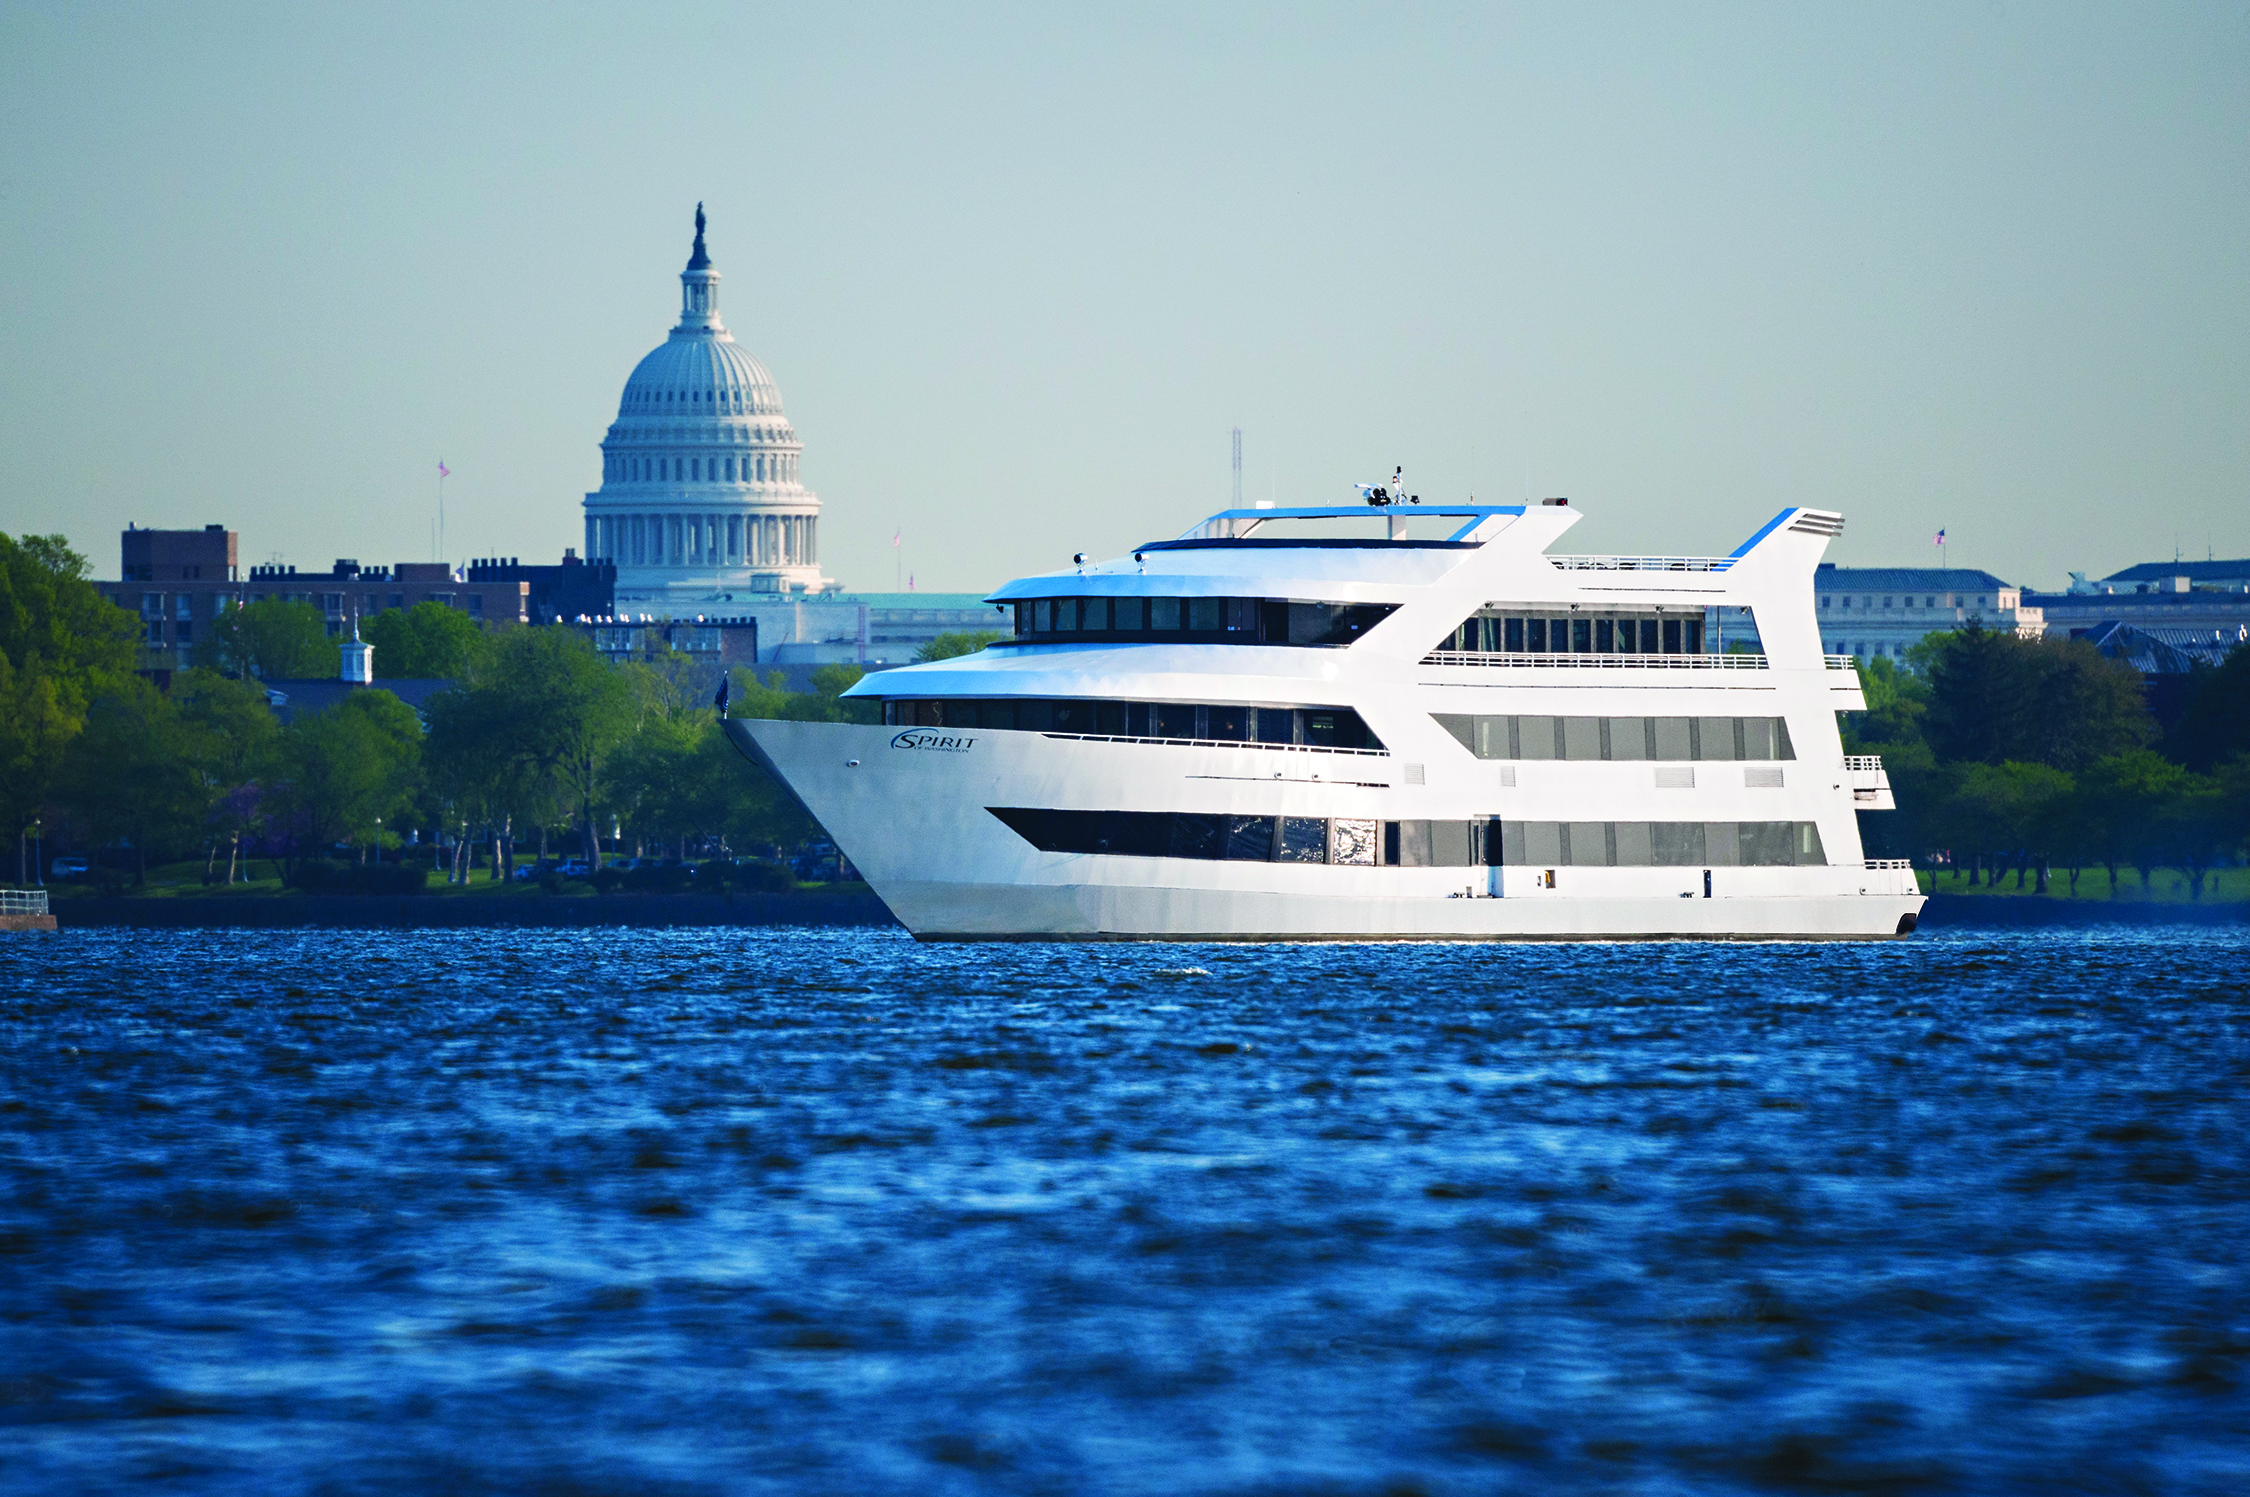 Merger on the Potomac: Alexandria cruise ship operator acquired